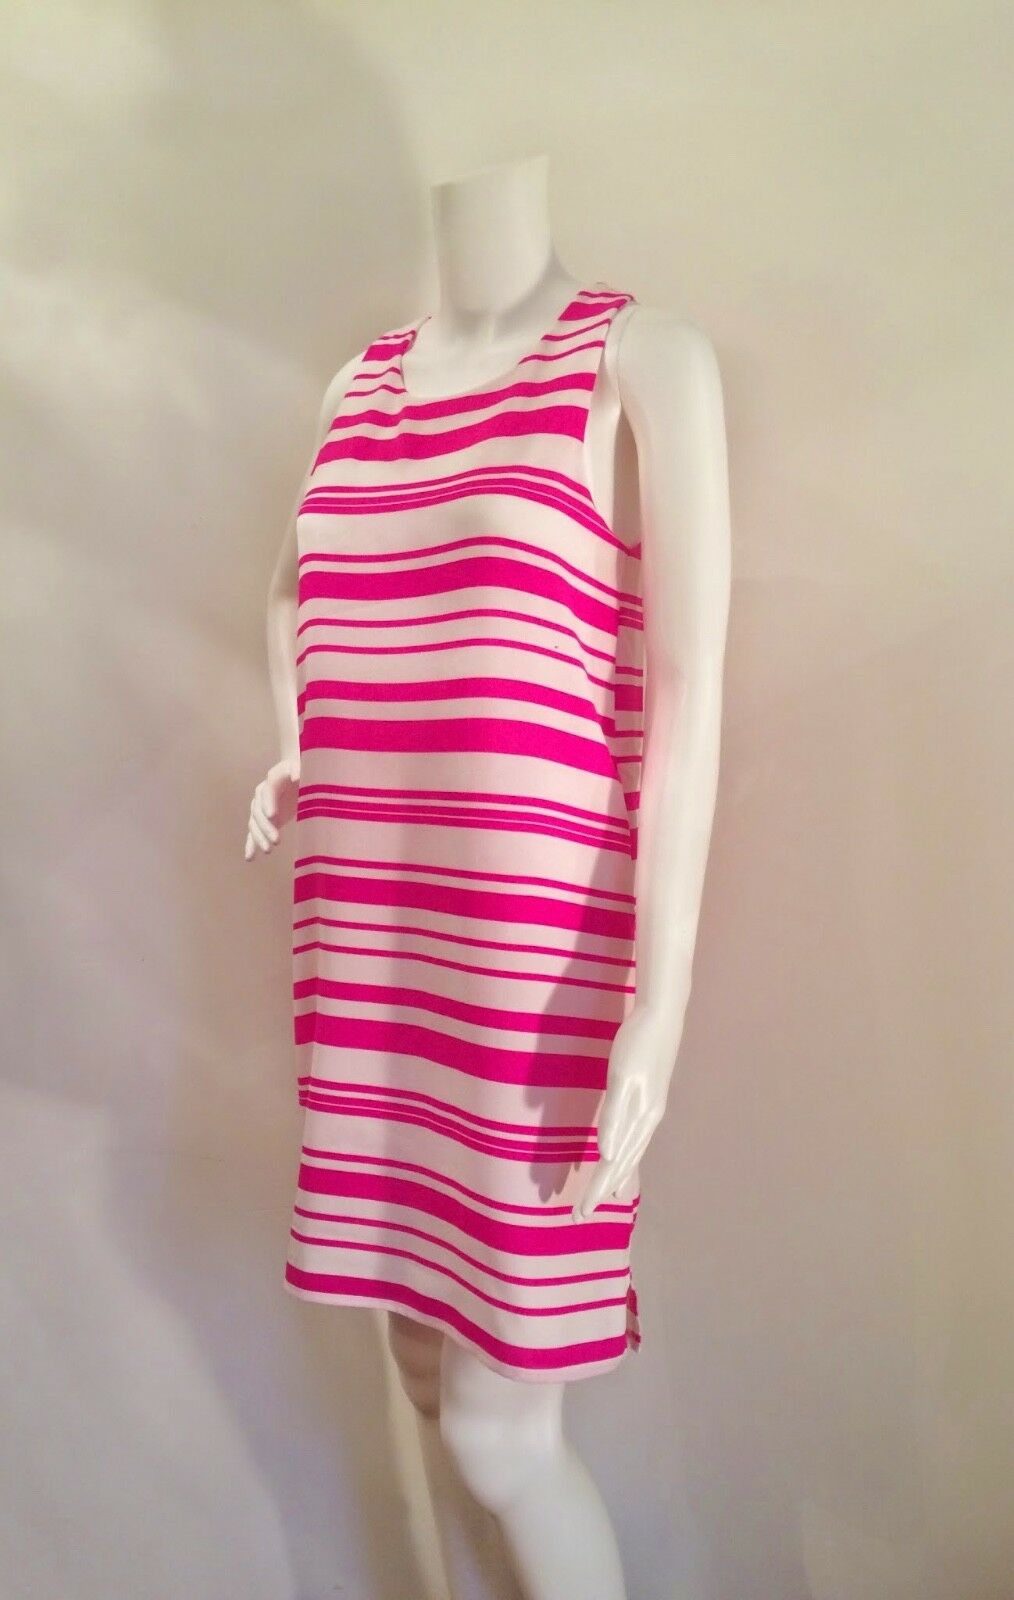 Everly Pink and White White White Striped Sheath Dress size Small bd9dbc